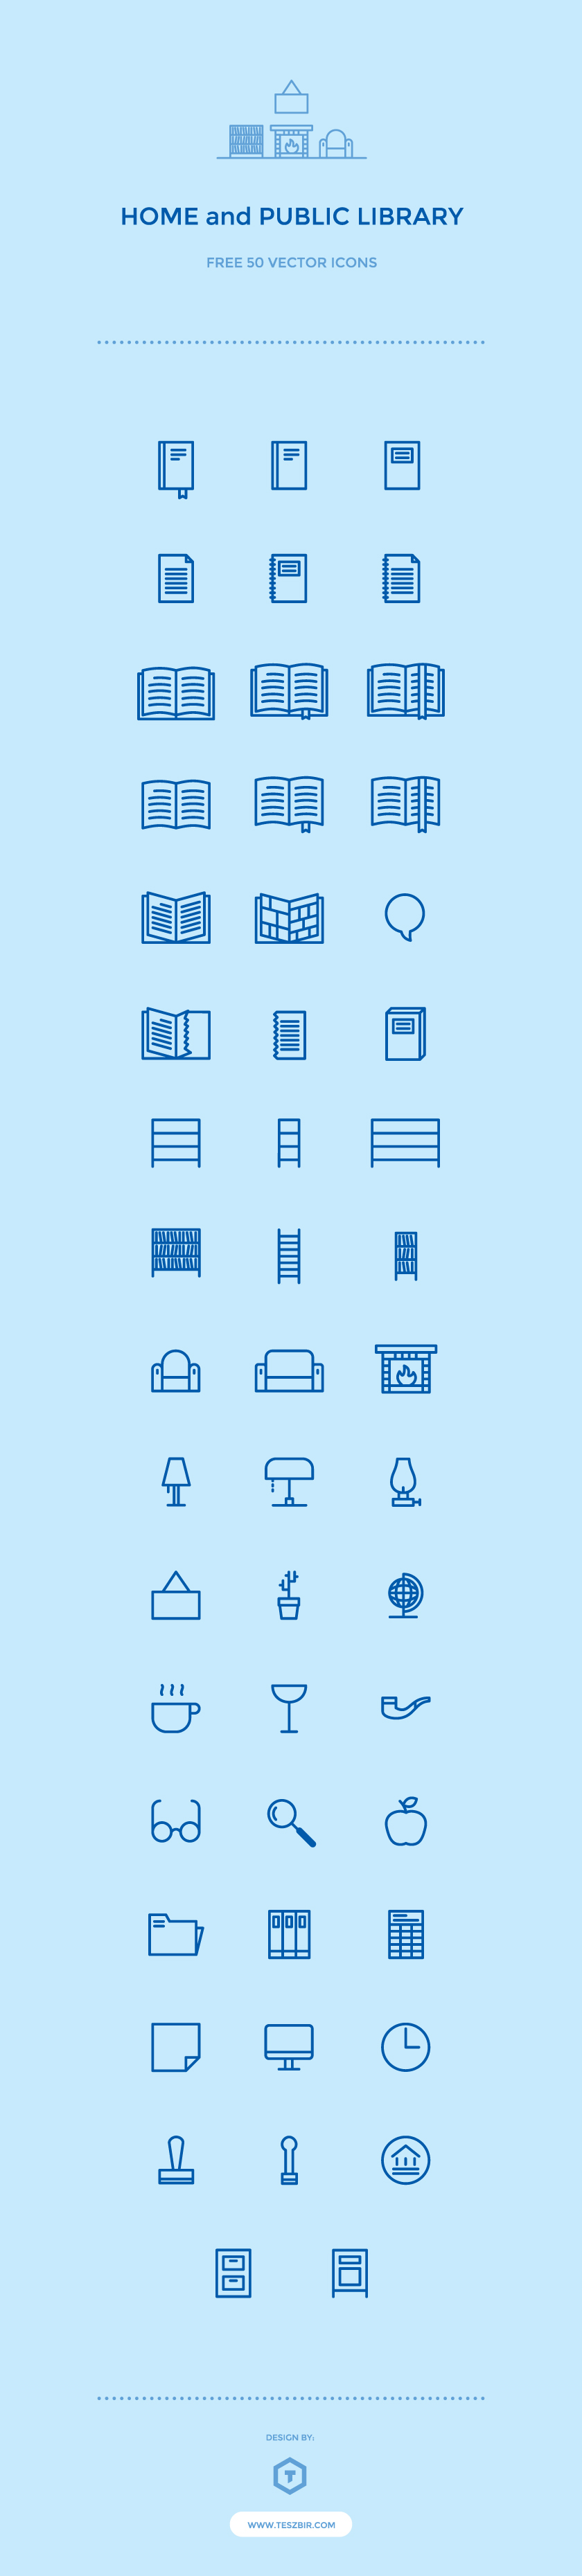 50 free public library icons